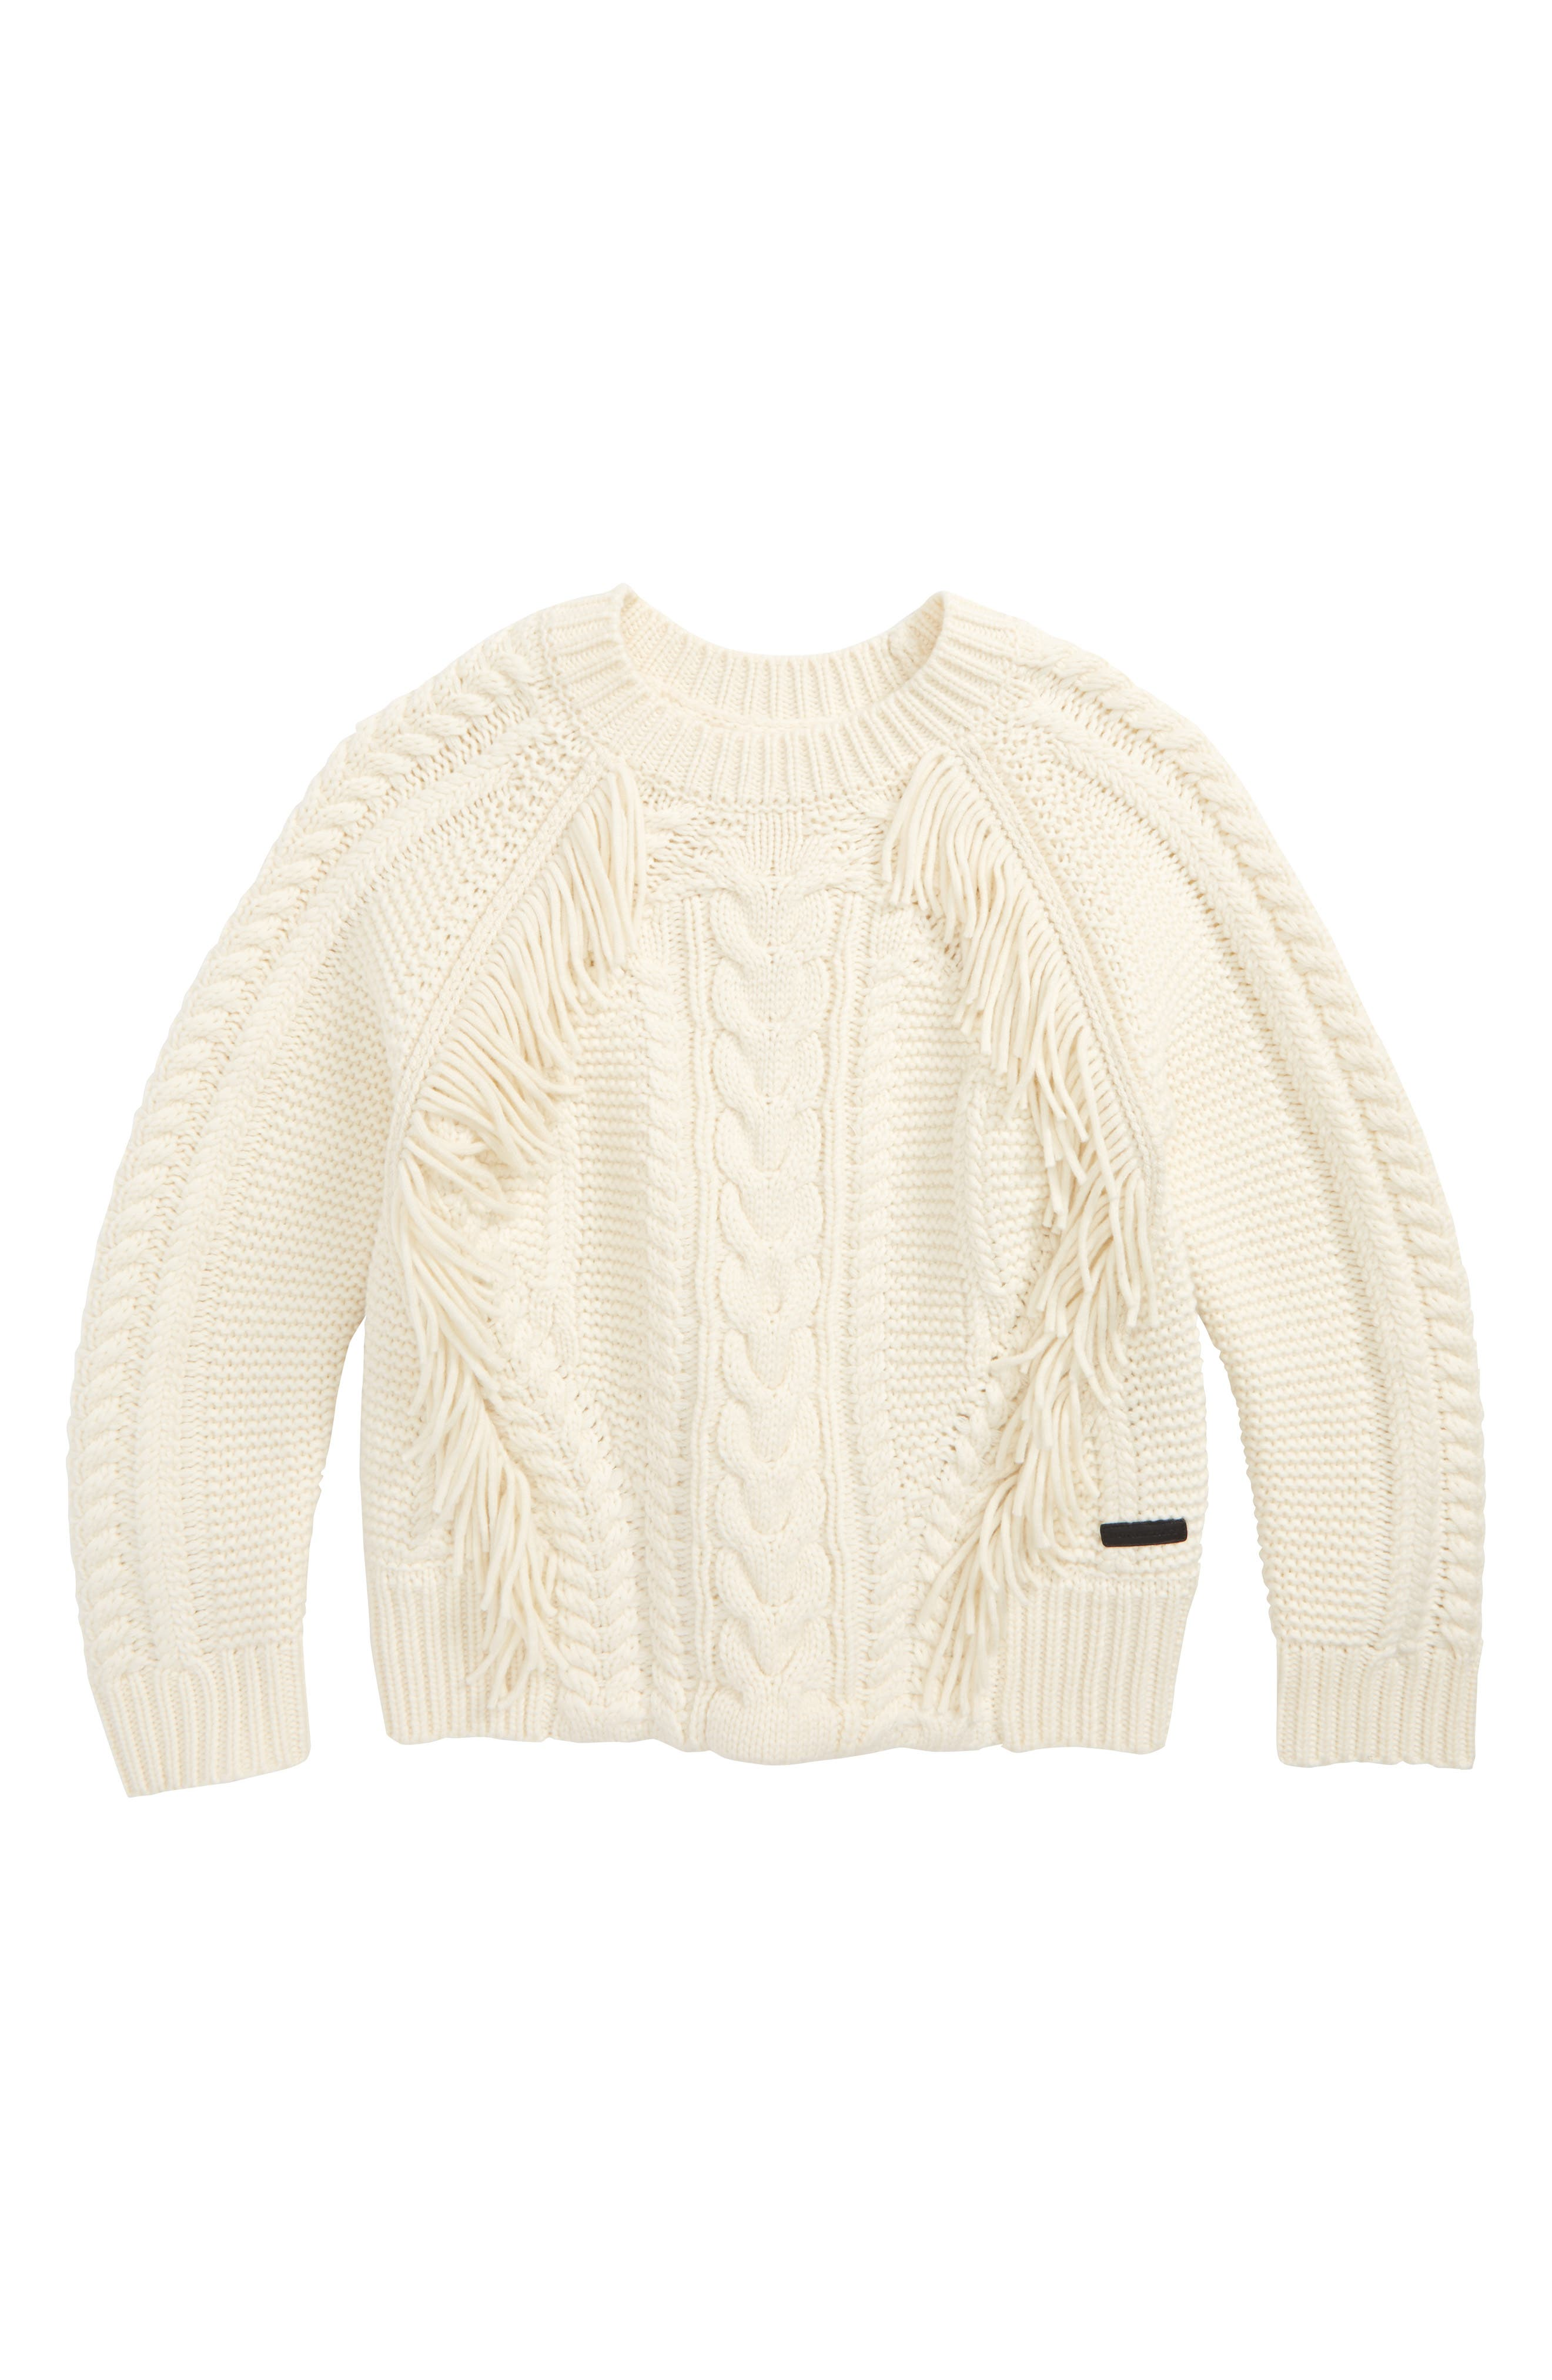 Main Image - Burberry Natasia Cable Knit Sweater (Little Girls & Big Girls)